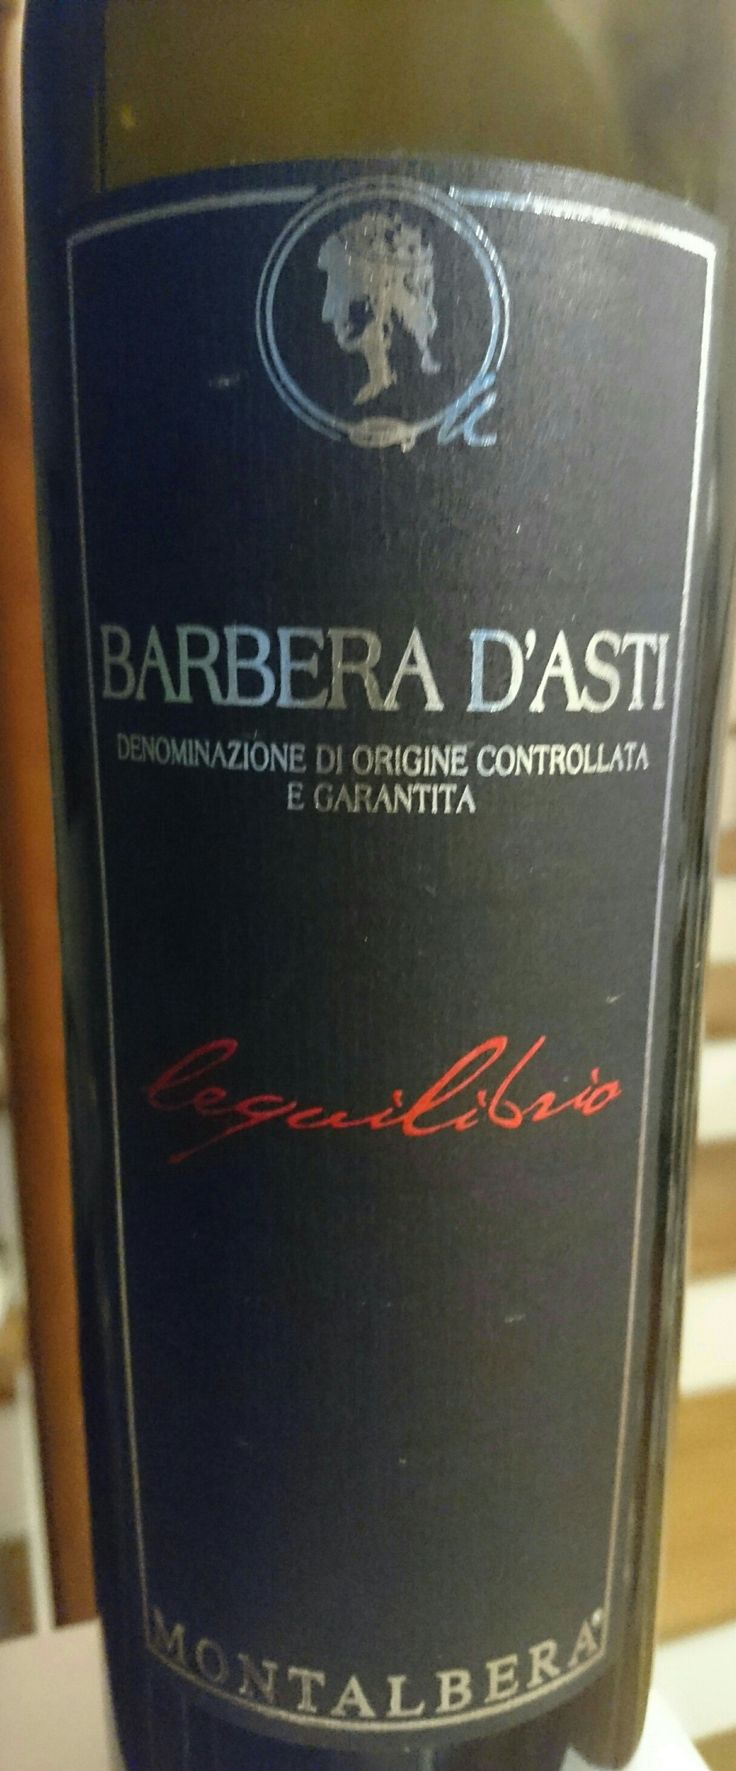 Barbera (Benchmark Wines) $37. For a non-Barbera fan, this was a delight. Pair with Antipasto